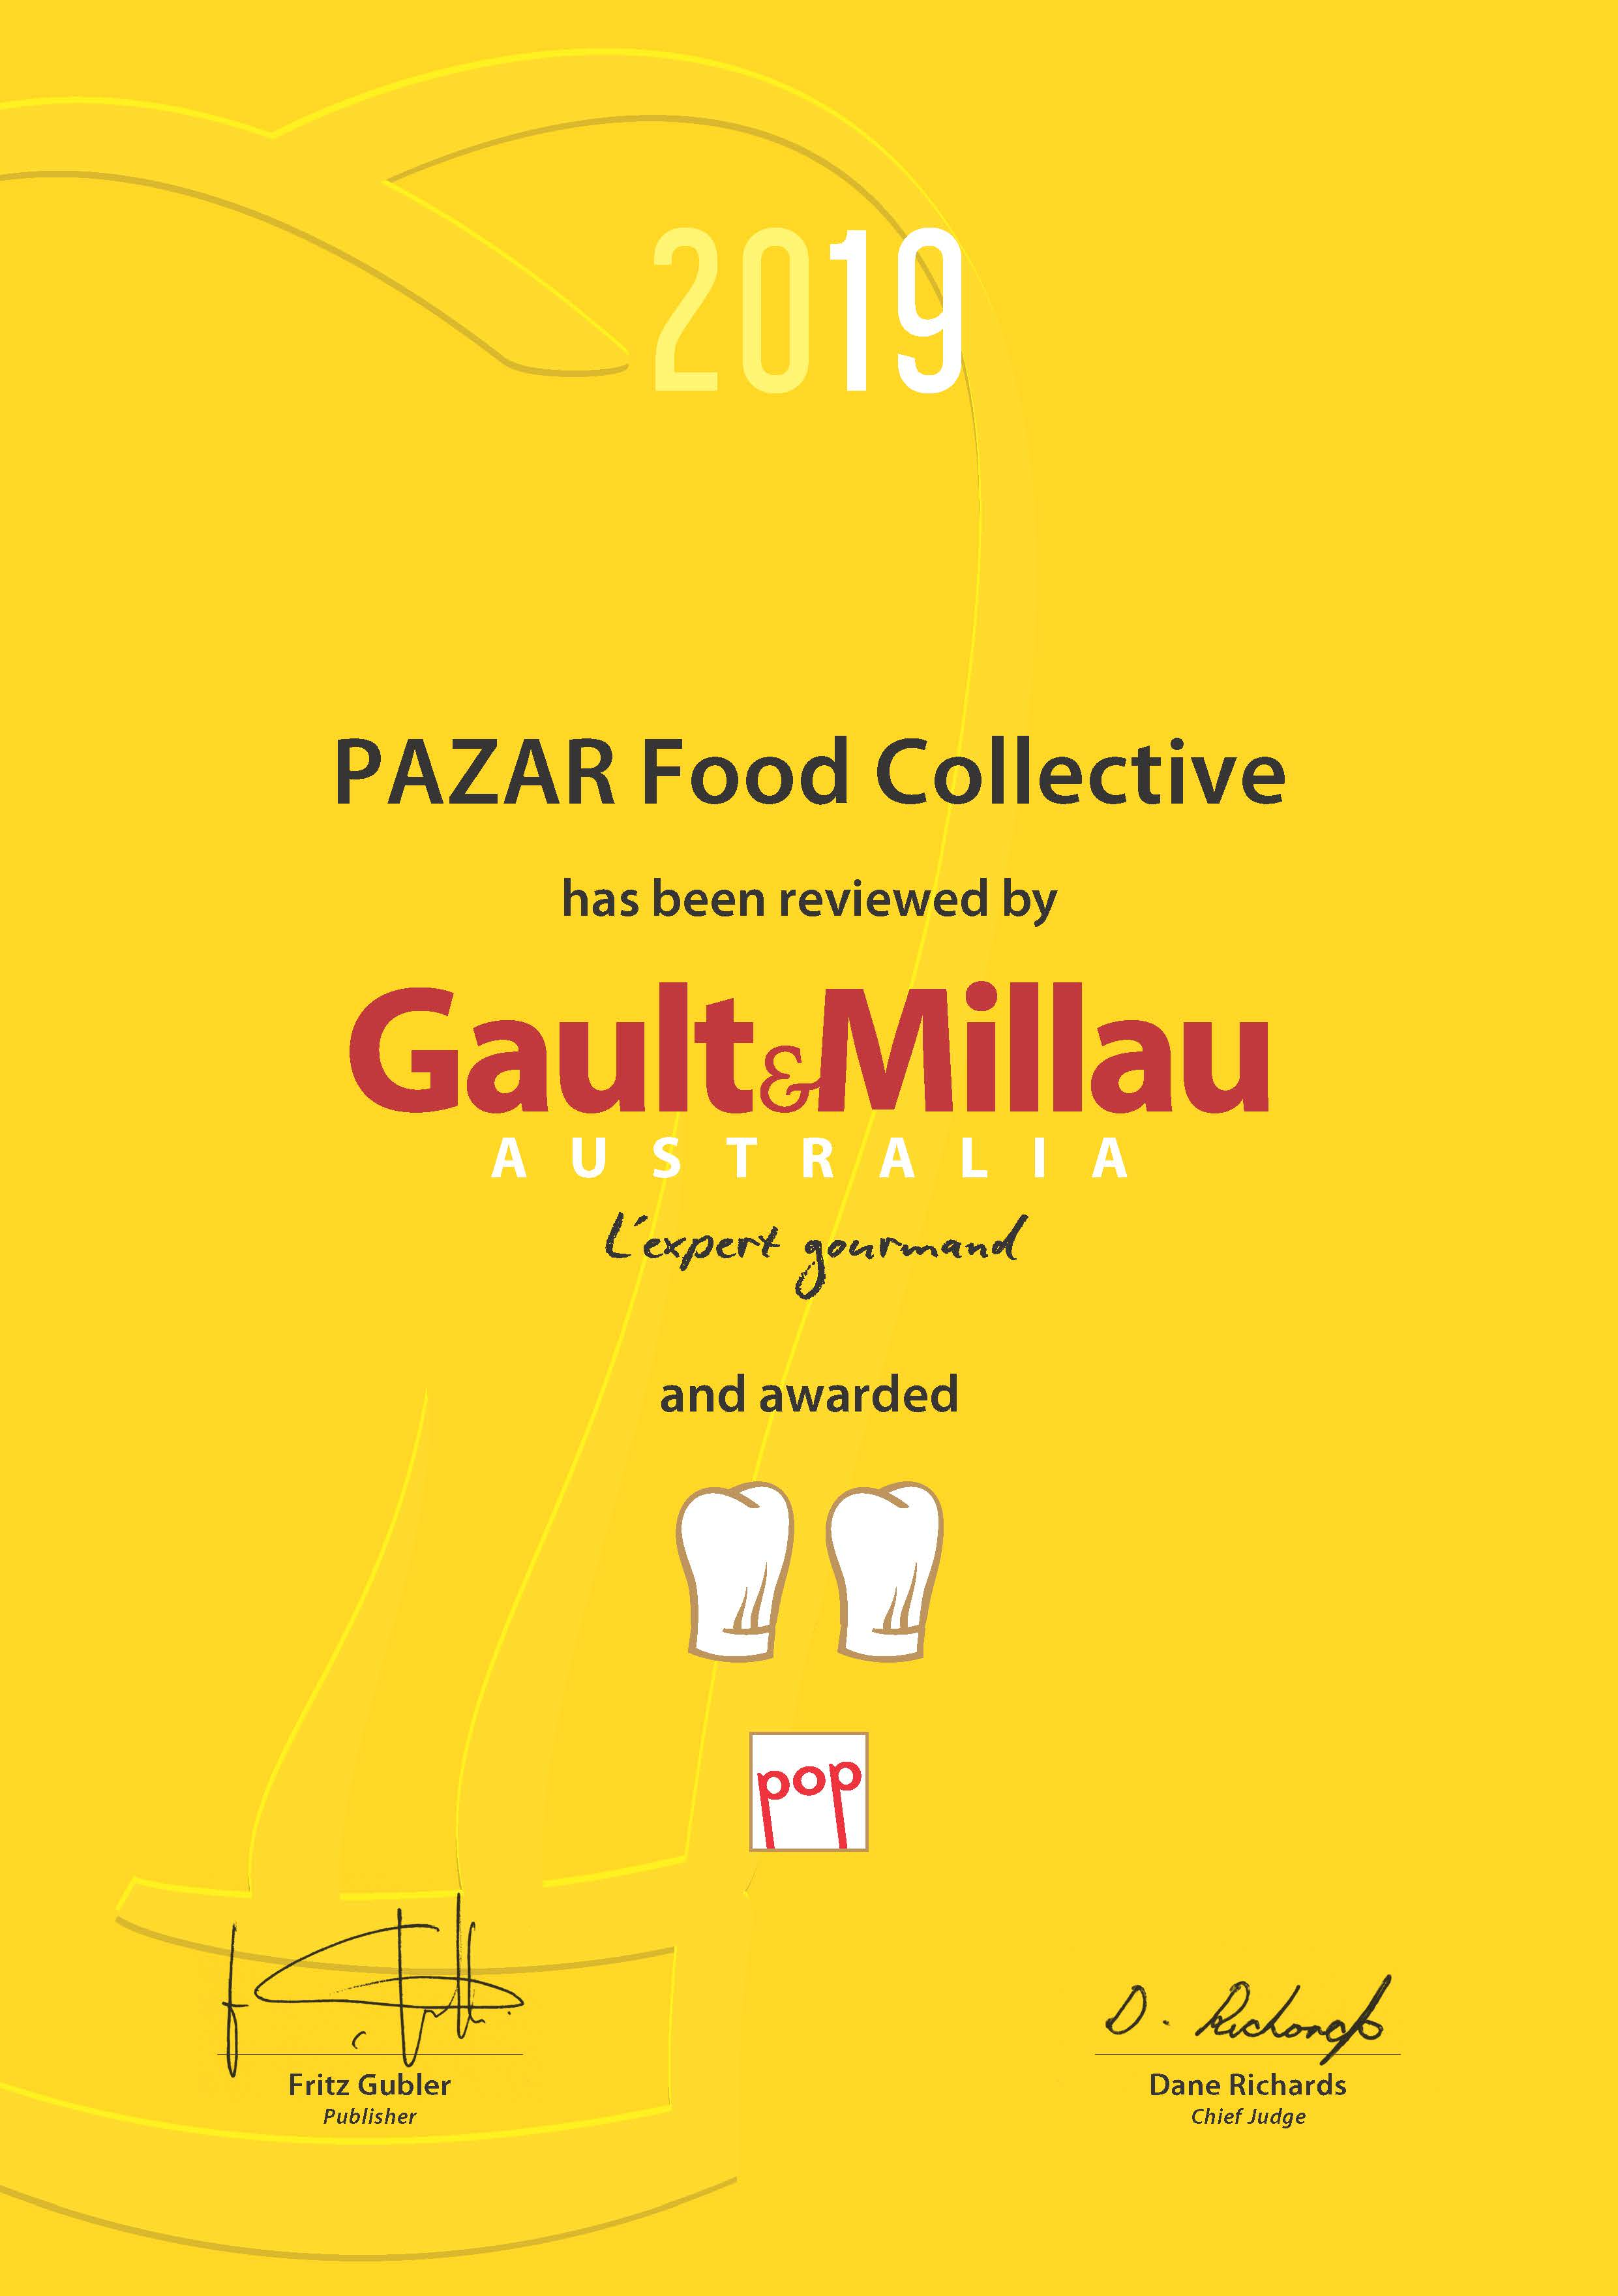 G&M_2019_Certificate_PAZAR Food Collective.jpg